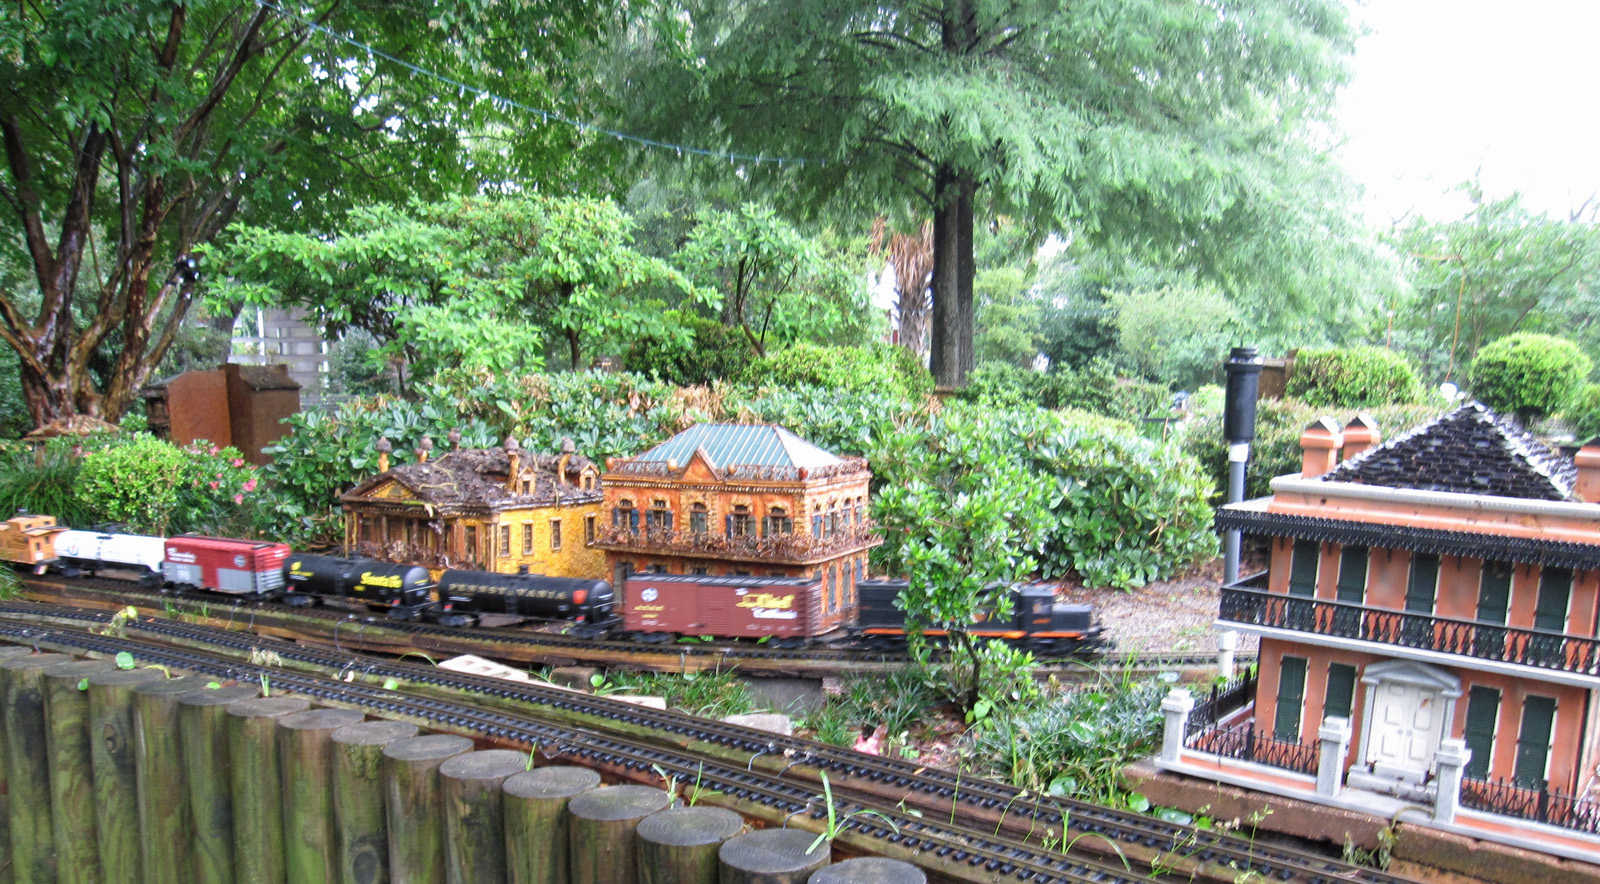 Beau File:New Orleans Botanical Garden Train Set